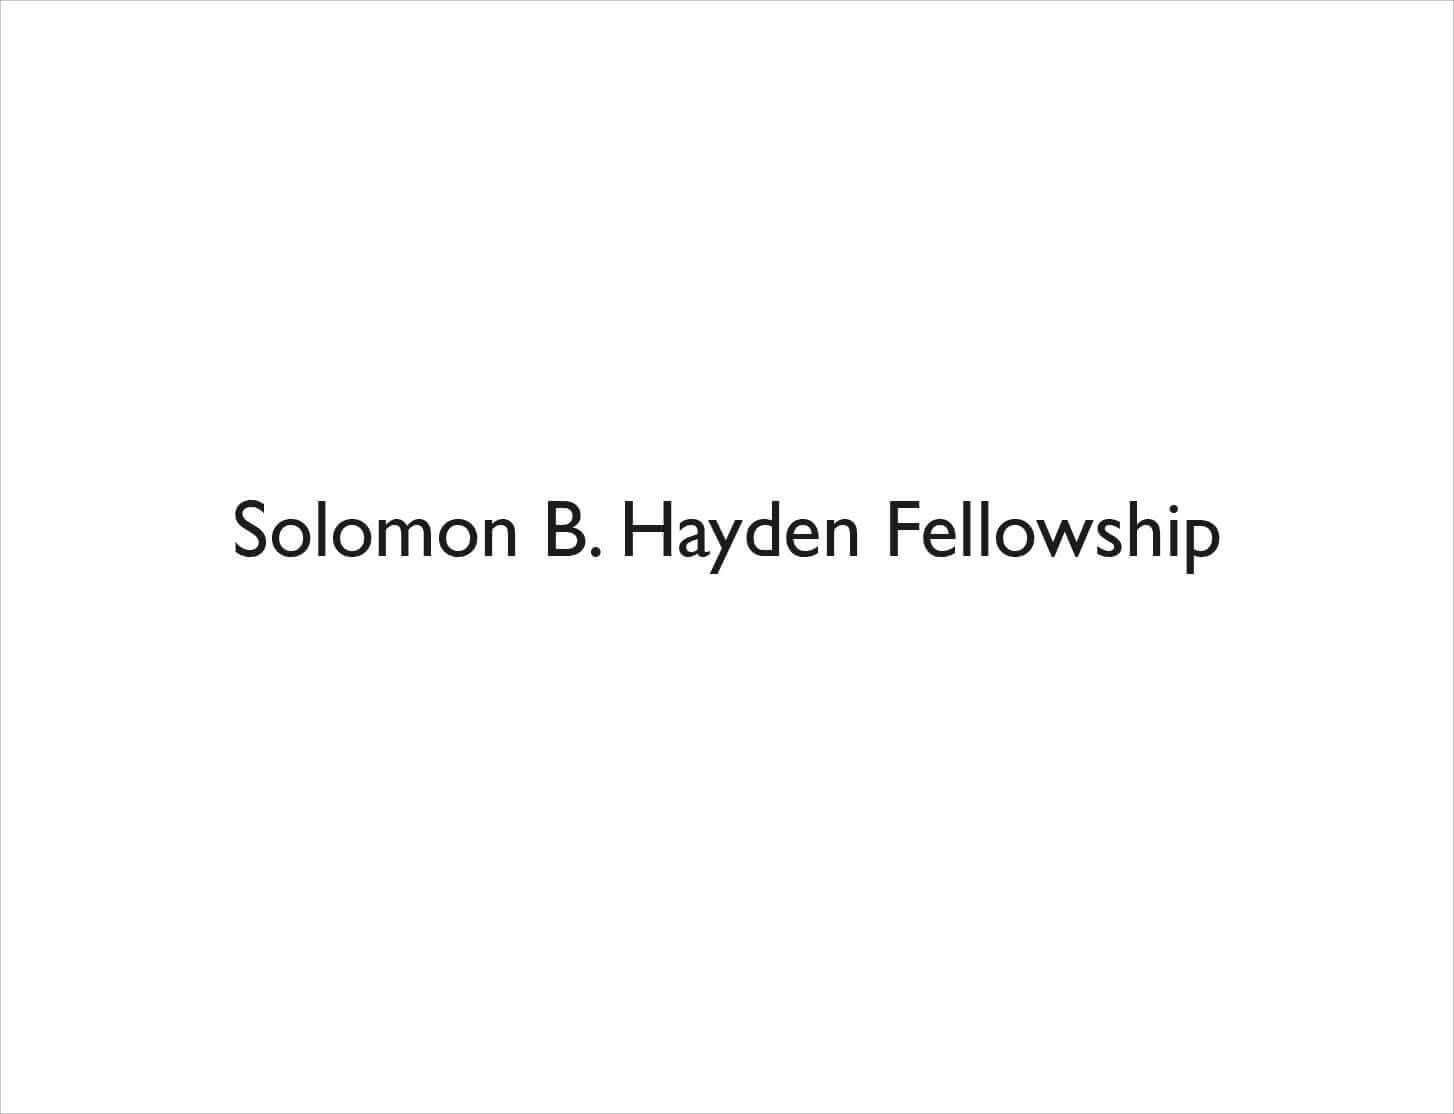 Announcing Solomon B. Hayden Fellowship for Art History